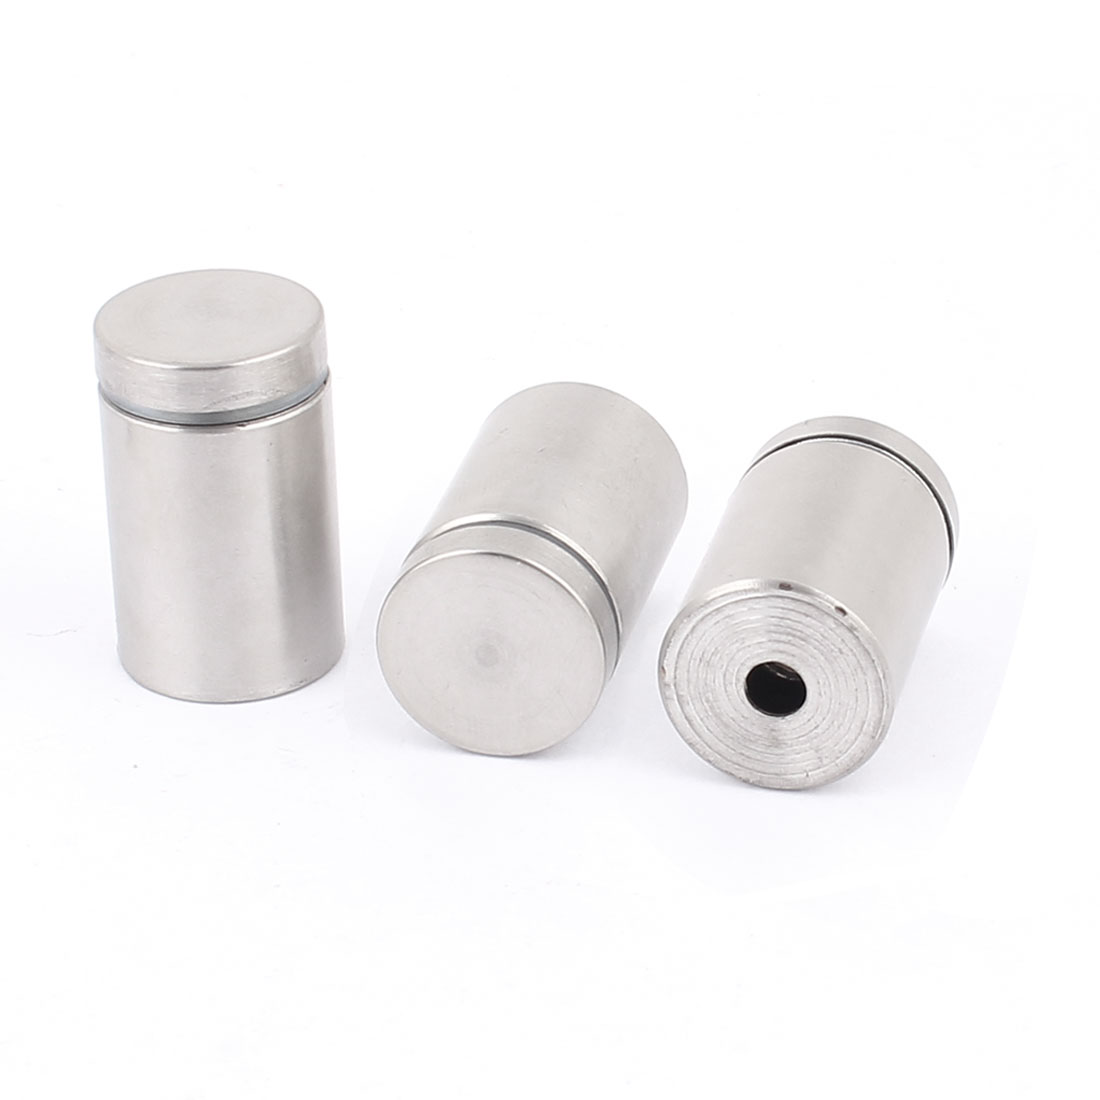 19mm x 30mm Stainless Steel Glass Standoff Hardware Silver Tone 3 Pcs